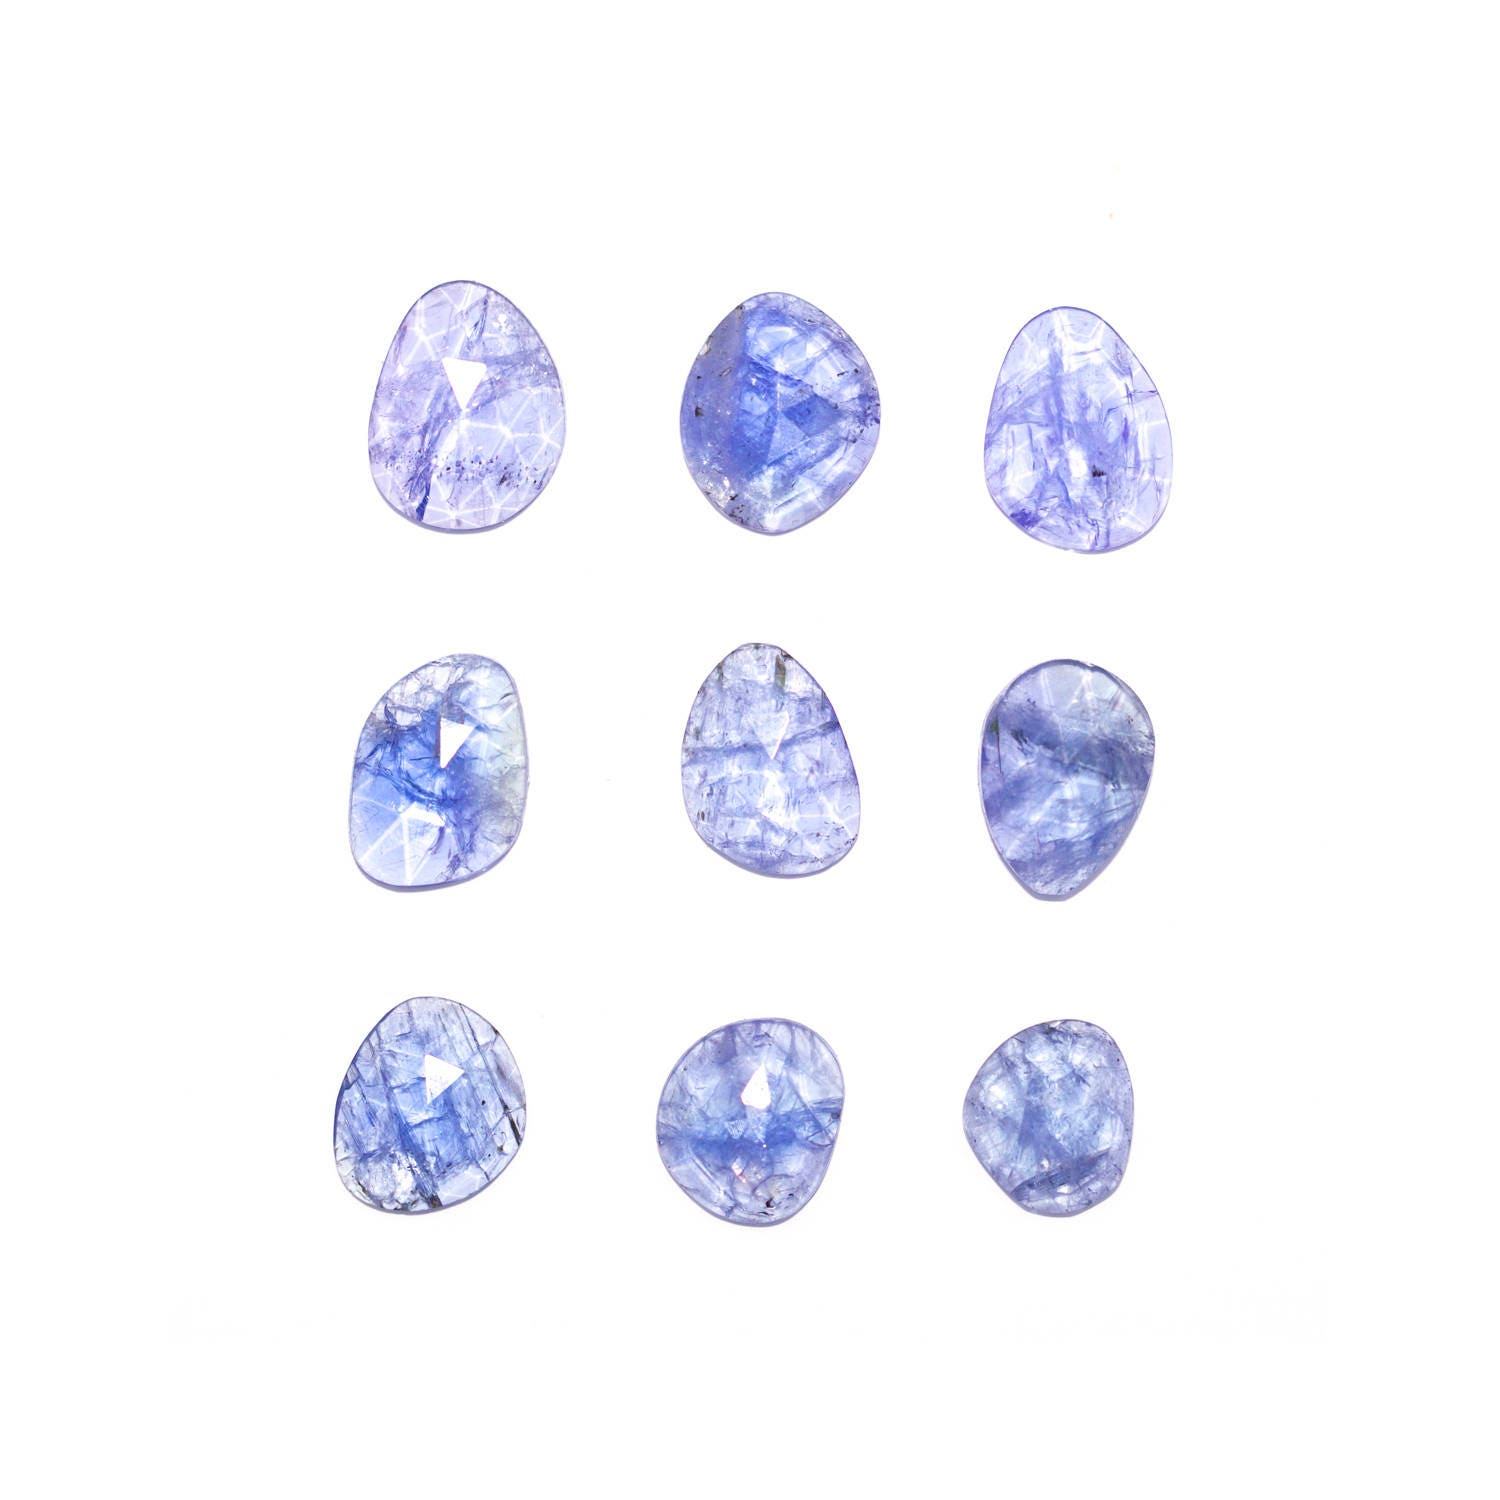 gemstones oval color ct tanzania loose multi natural heated r greenish blue tanzanite dark shape vs